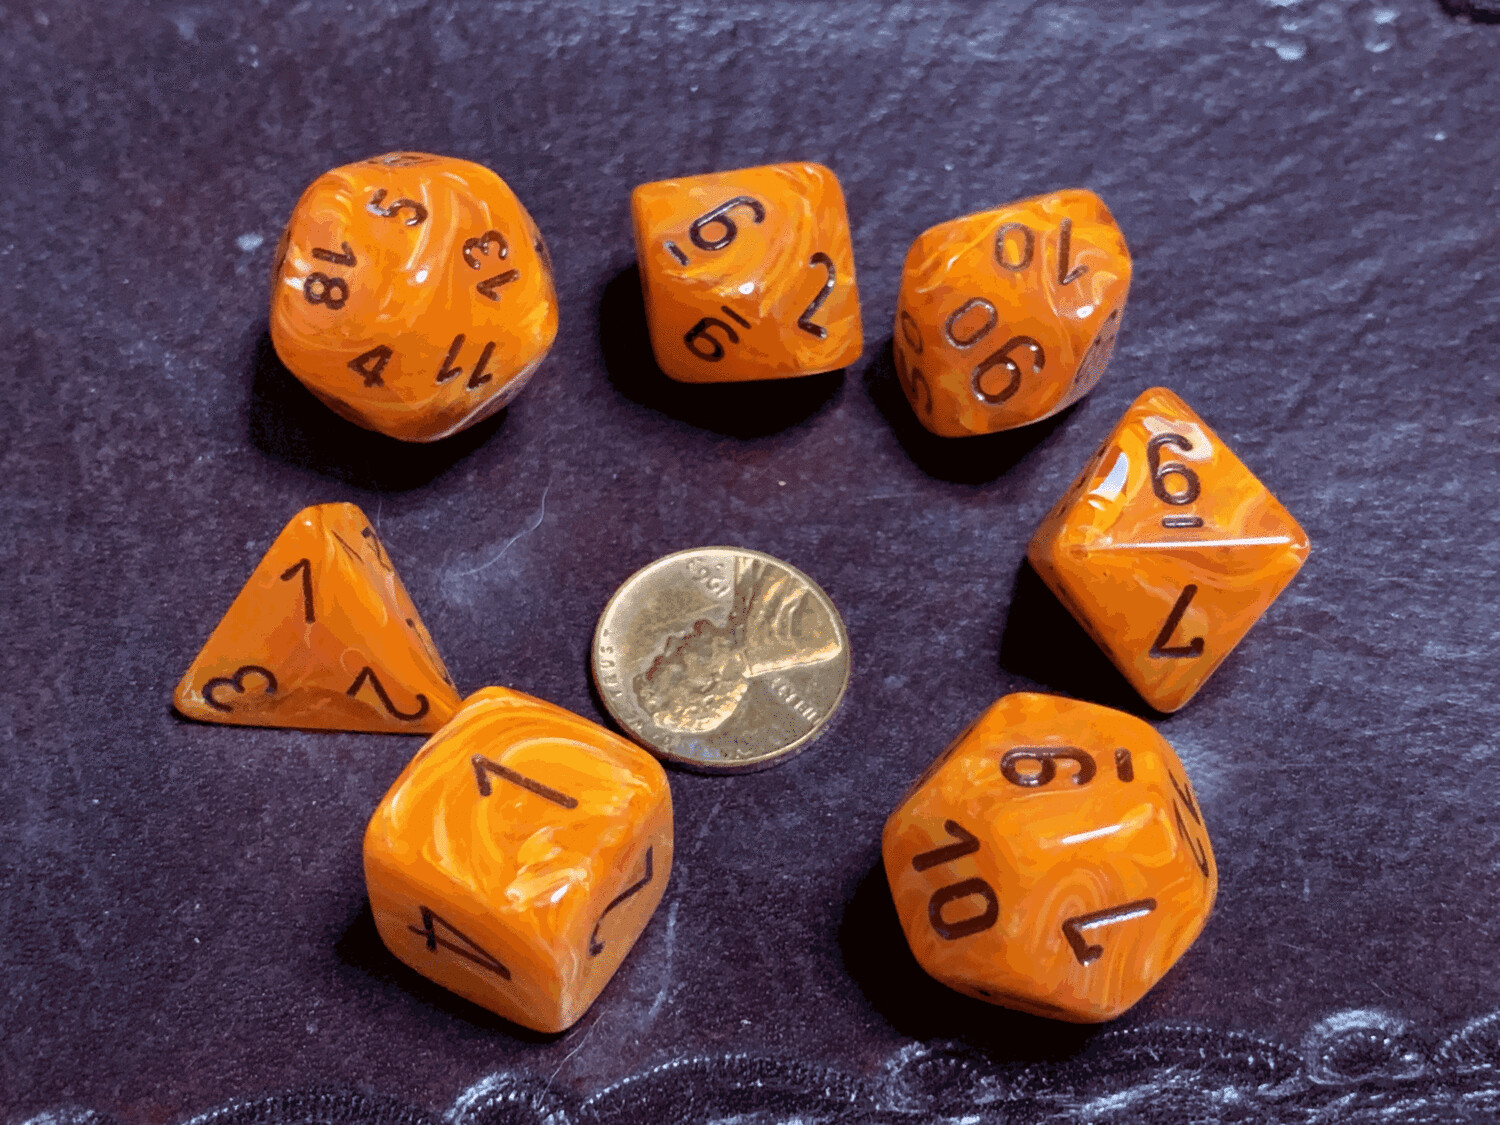 Chessex 16mm 7 Die Polyhedral Dice Set - Vortex Orange Black - RPG Tabletop Game